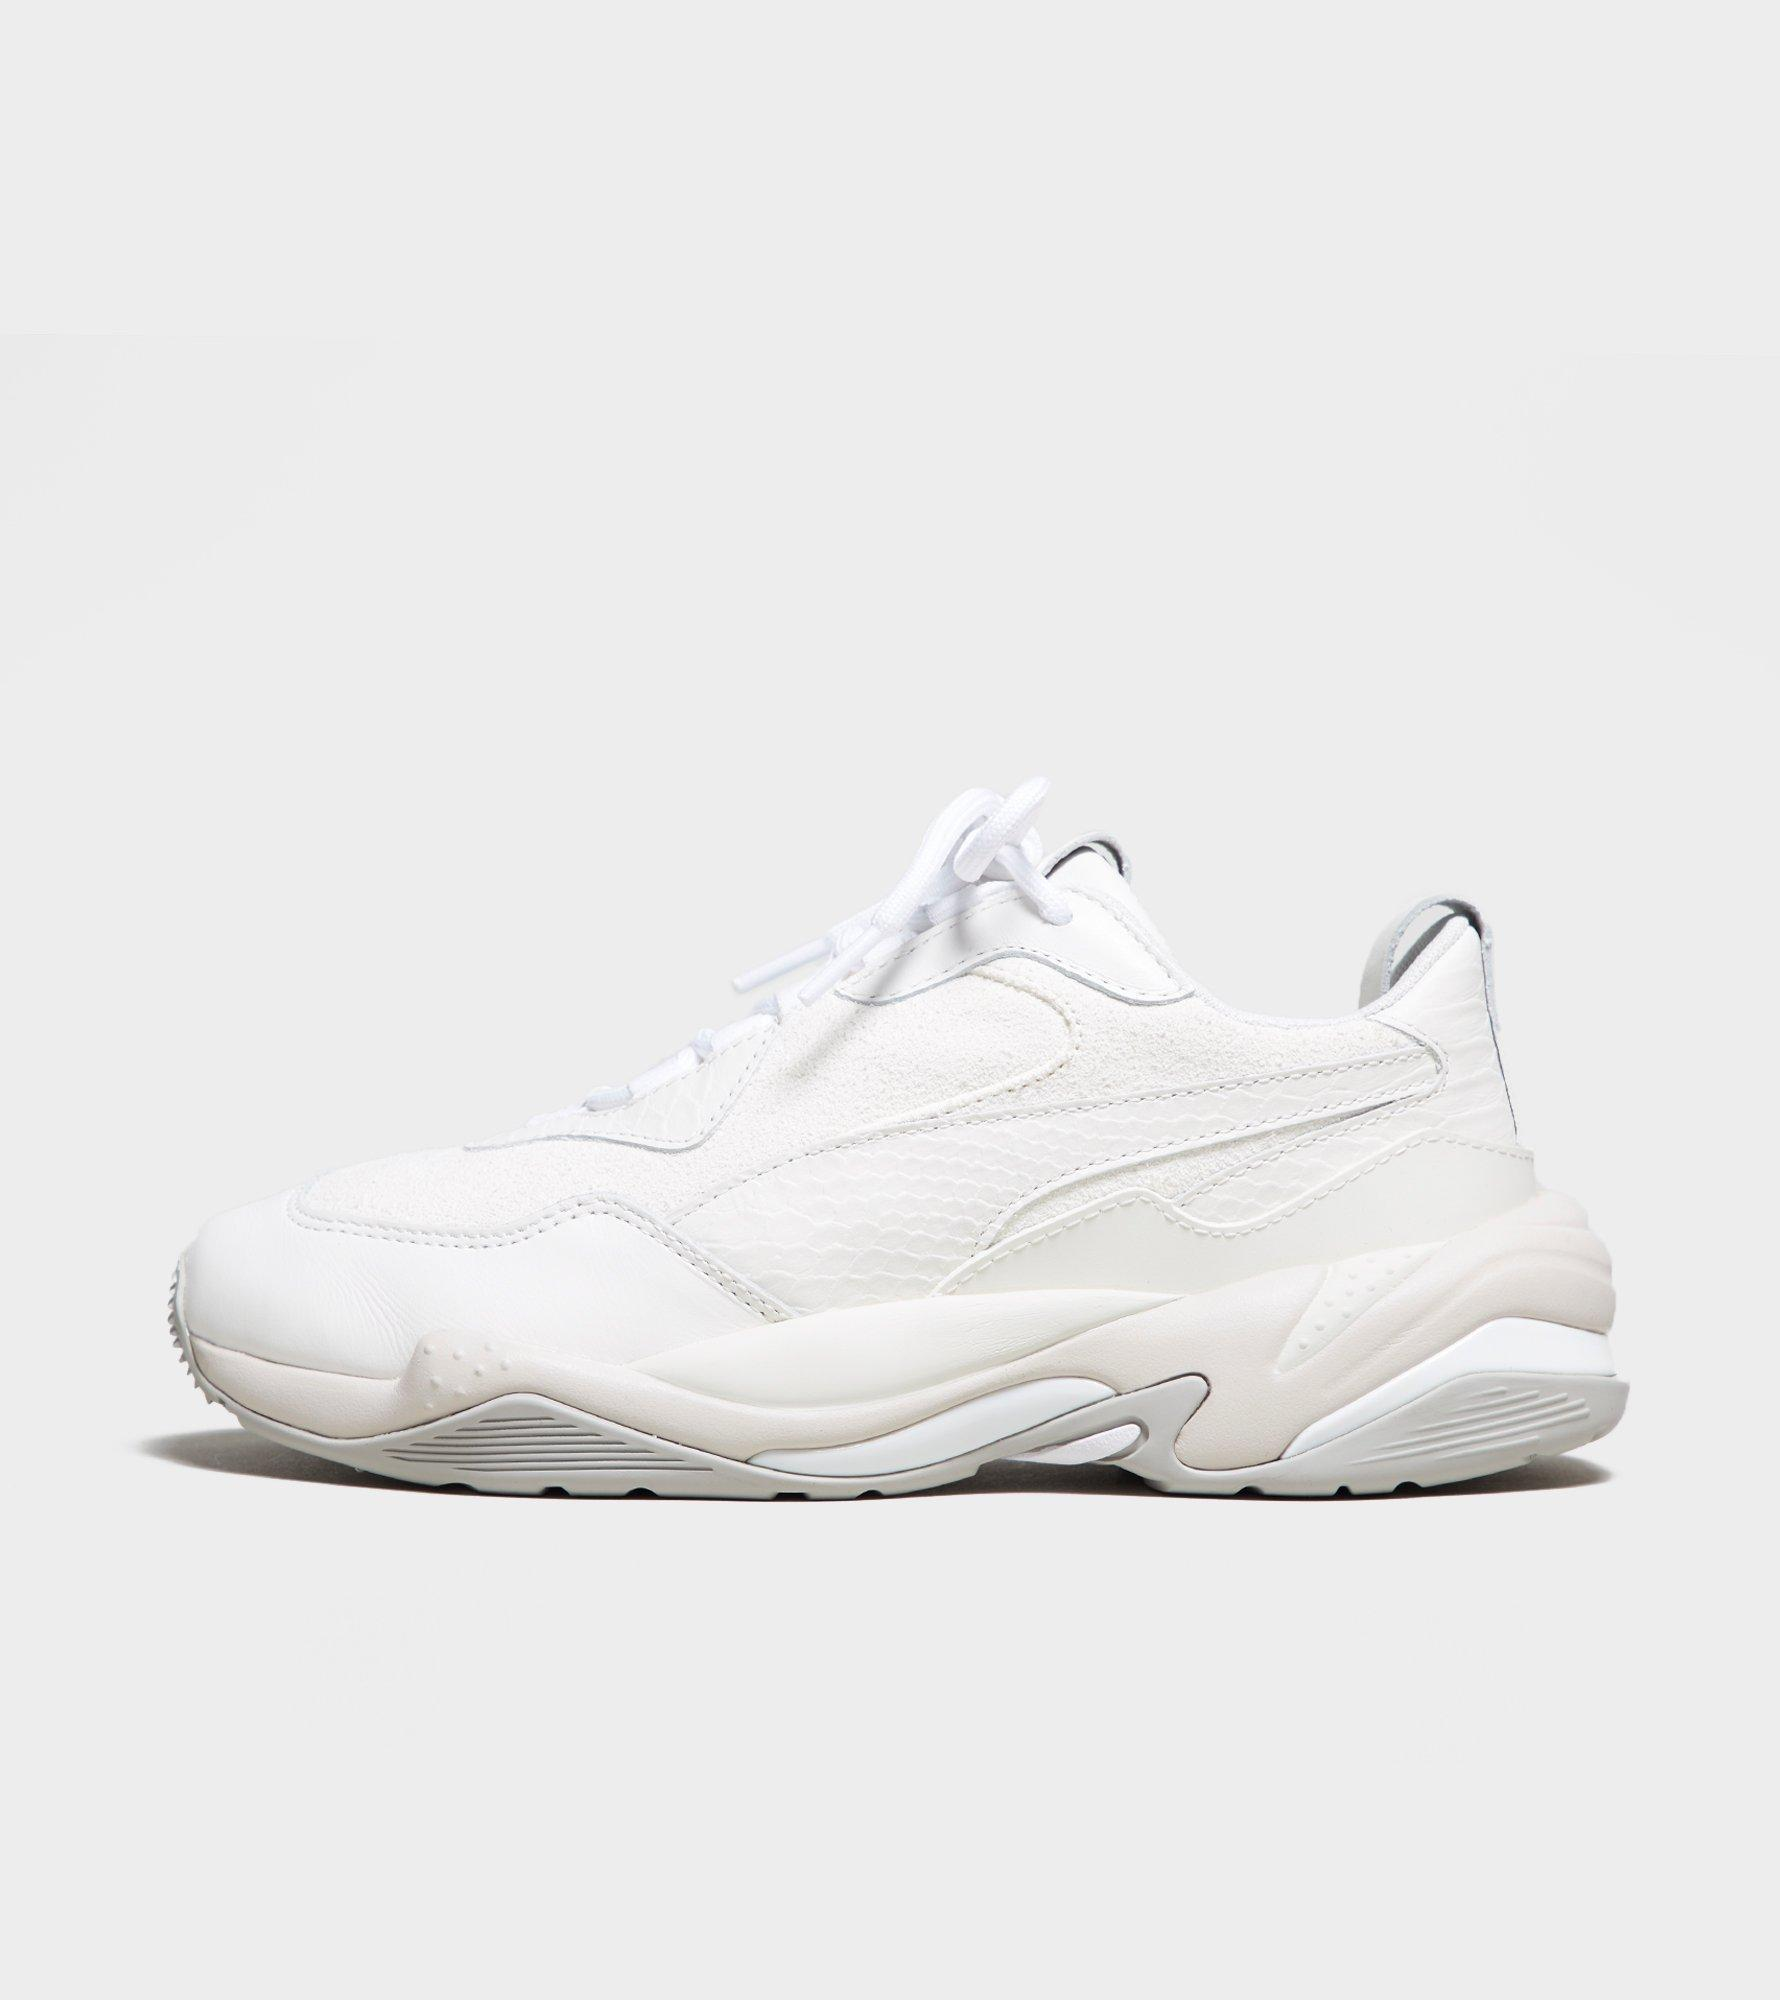 puma thunder white womens